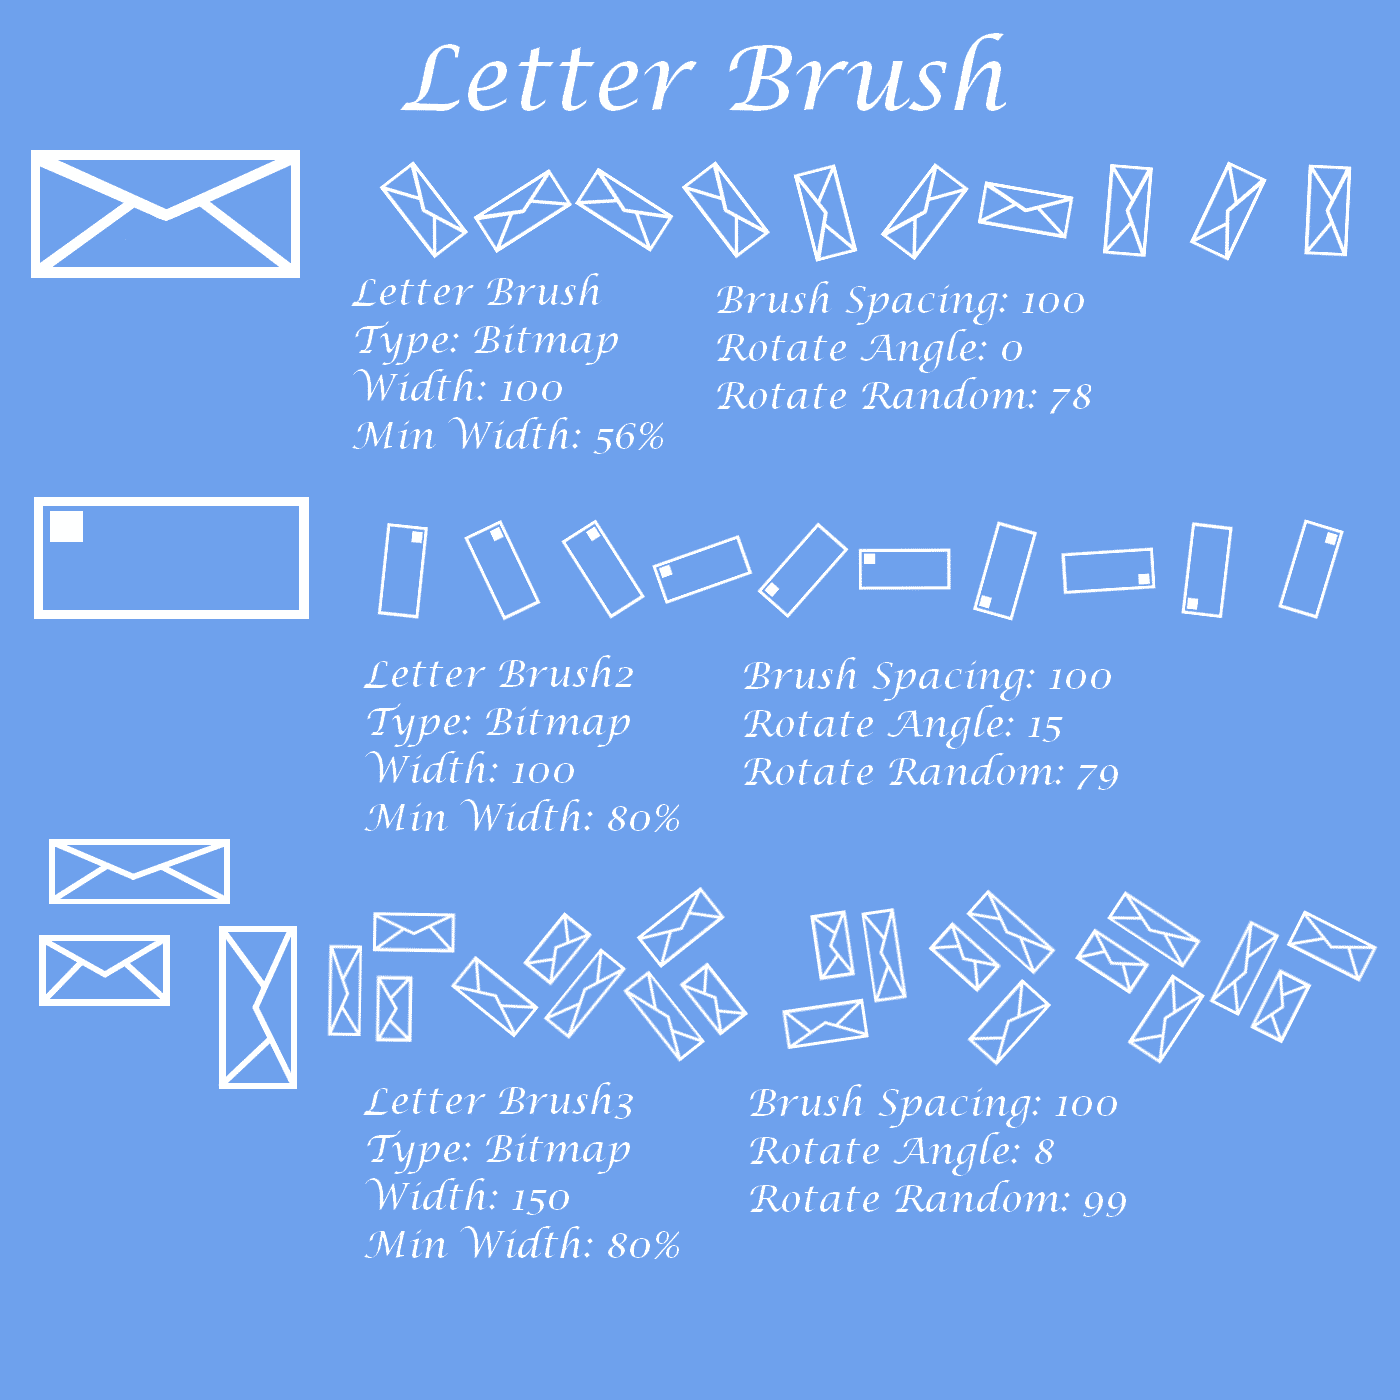 45. Letters and Envelopes